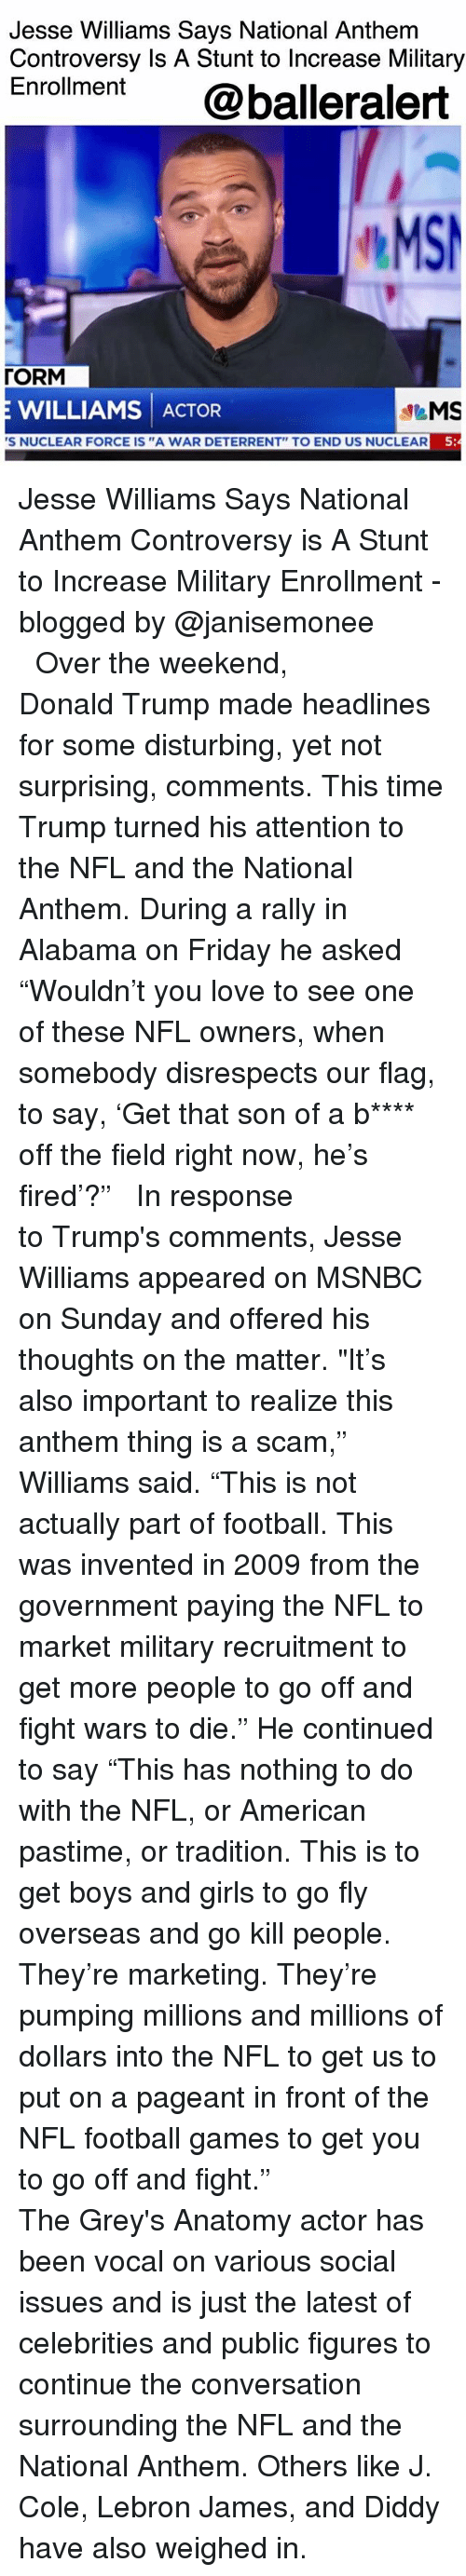 "Donald Trump, Football, and Friday: Jesse Williams Says National Anthem  Controversy Is A Stunt to Increase Military  Enroment @balleralert  MS  「ORM  E WILLIAMS ACTOR  S NUCLEAR FORCE IS ""A WAR DETERRENT"" TO END US NUCLEAR  5 Jesse Williams Says National Anthem Controversy is A Stunt to Increase Military Enrollment - blogged by @janisemonee ⠀⠀⠀⠀⠀⠀⠀⠀⠀ ⠀⠀⠀⠀⠀⠀⠀⠀⠀ Over the weekend, Donald Trump made headlines for some disturbing, yet not surprising, comments. This time Trump turned his attention to the NFL and the National Anthem. During a rally in Alabama on Friday he asked ""Wouldn't you love to see one of these NFL owners, when somebody disrespects our flag, to say, 'Get that son of a b**** off the field right now, he's fired'?"" ⠀⠀⠀⠀⠀⠀⠀⠀⠀ ⠀⠀⠀⠀⠀⠀⠀⠀⠀ In response to Trump's comments, Jesse Williams appeared on MSNBC on Sunday and offered his thoughts on the matter. ""It's also important to realize this anthem thing is a scam,"" Williams said. ""This is not actually part of football. This was invented in 2009 from the government paying the NFL to market military recruitment to get more people to go off and fight wars to die."" He continued to say ""This has nothing to do with the NFL, or American pastime, or tradition. This is to get boys and girls to go fly overseas and go kill people. They're marketing. They're pumping millions and millions of dollars into the NFL to get us to put on a pageant in front of the NFL football games to get you to go off and fight."" ⠀⠀⠀⠀⠀⠀⠀⠀⠀ ⠀⠀⠀⠀⠀⠀⠀⠀⠀ The Grey's Anatomy actor has been vocal on various social issues and is just the latest of celebrities and public figures to continue the conversation surrounding the NFL and the National Anthem. Others like J. Cole, Lebron James, and Diddy have also weighed in."